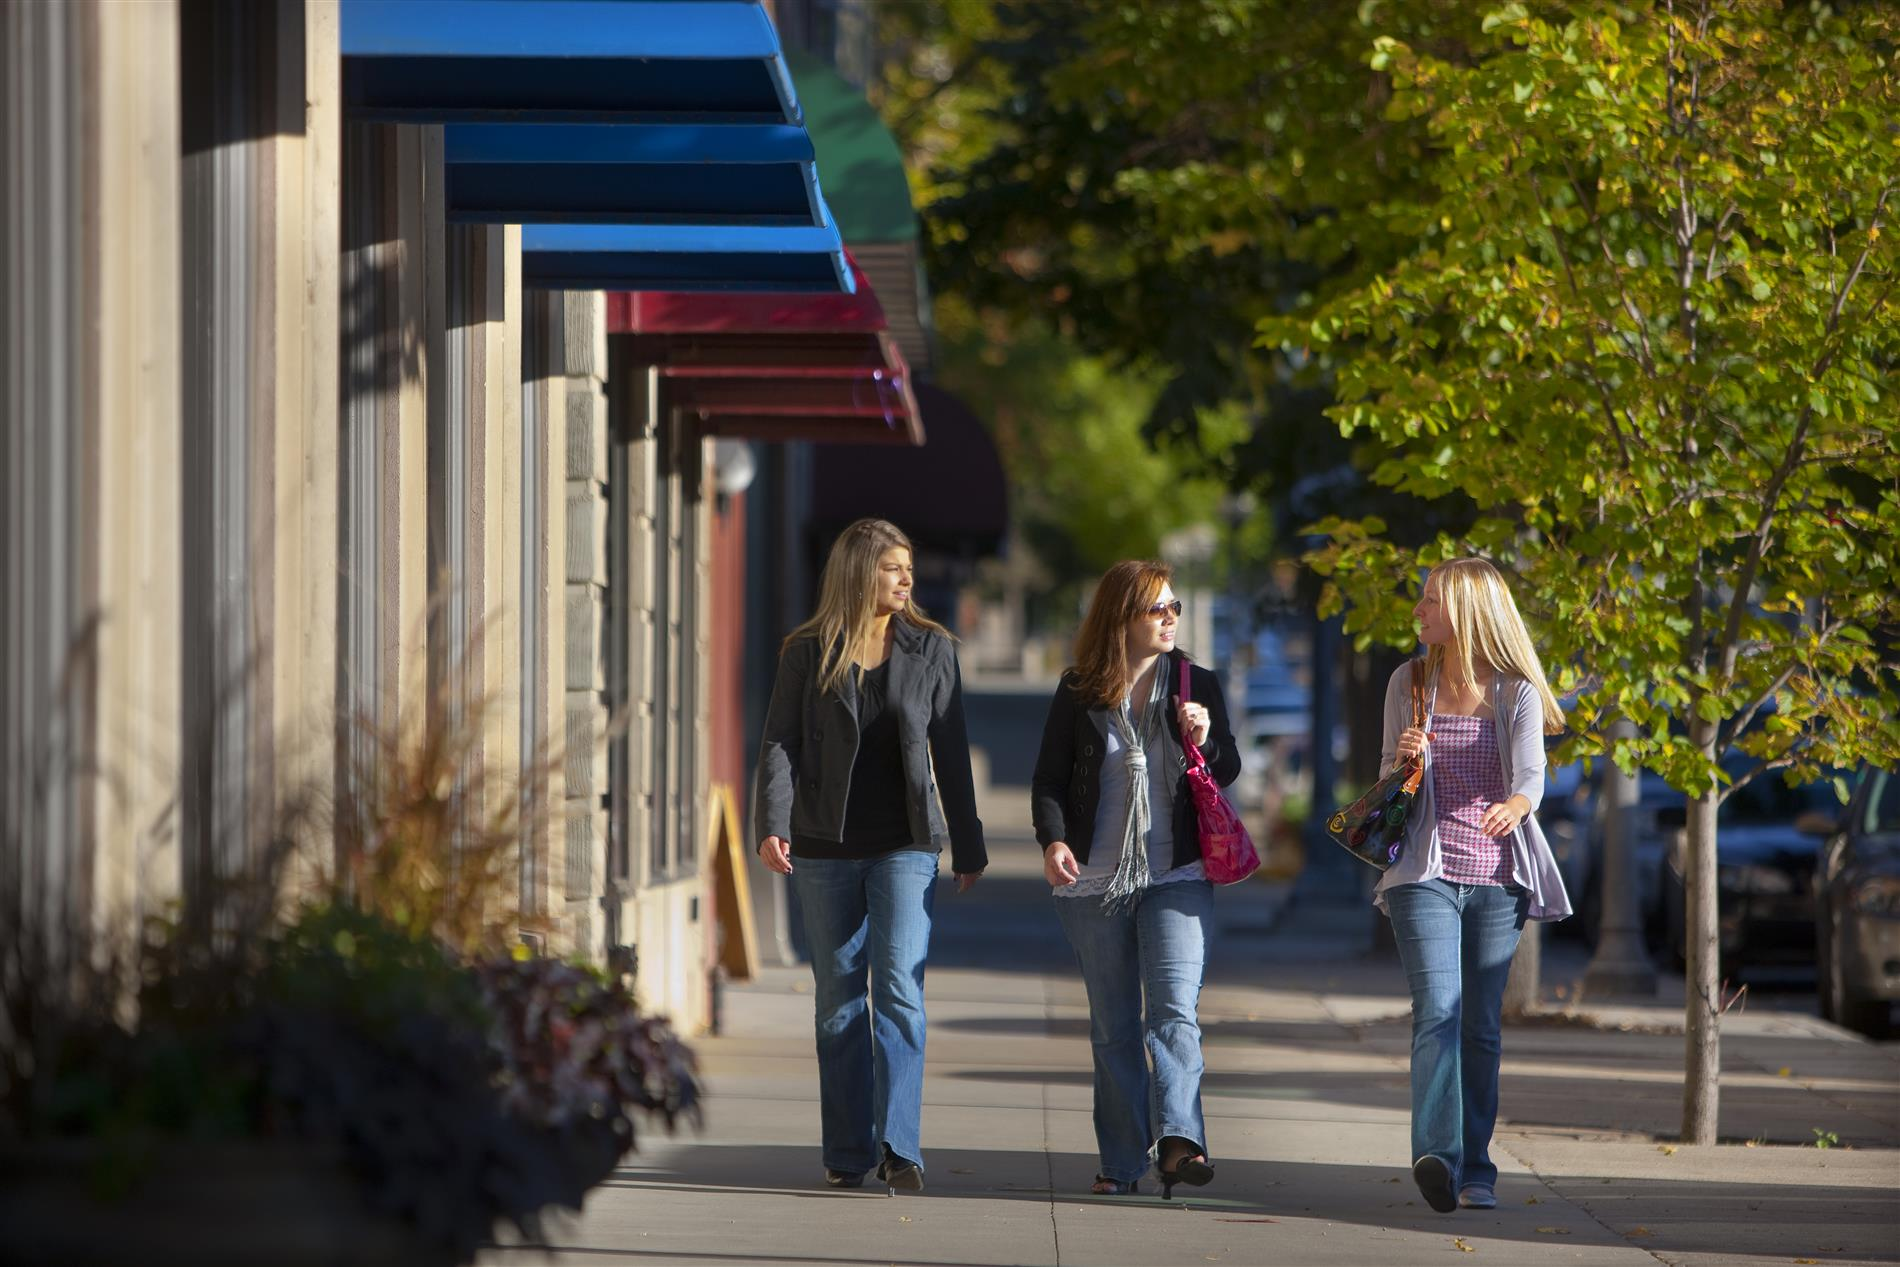 Shopping in Downtown Bismarck